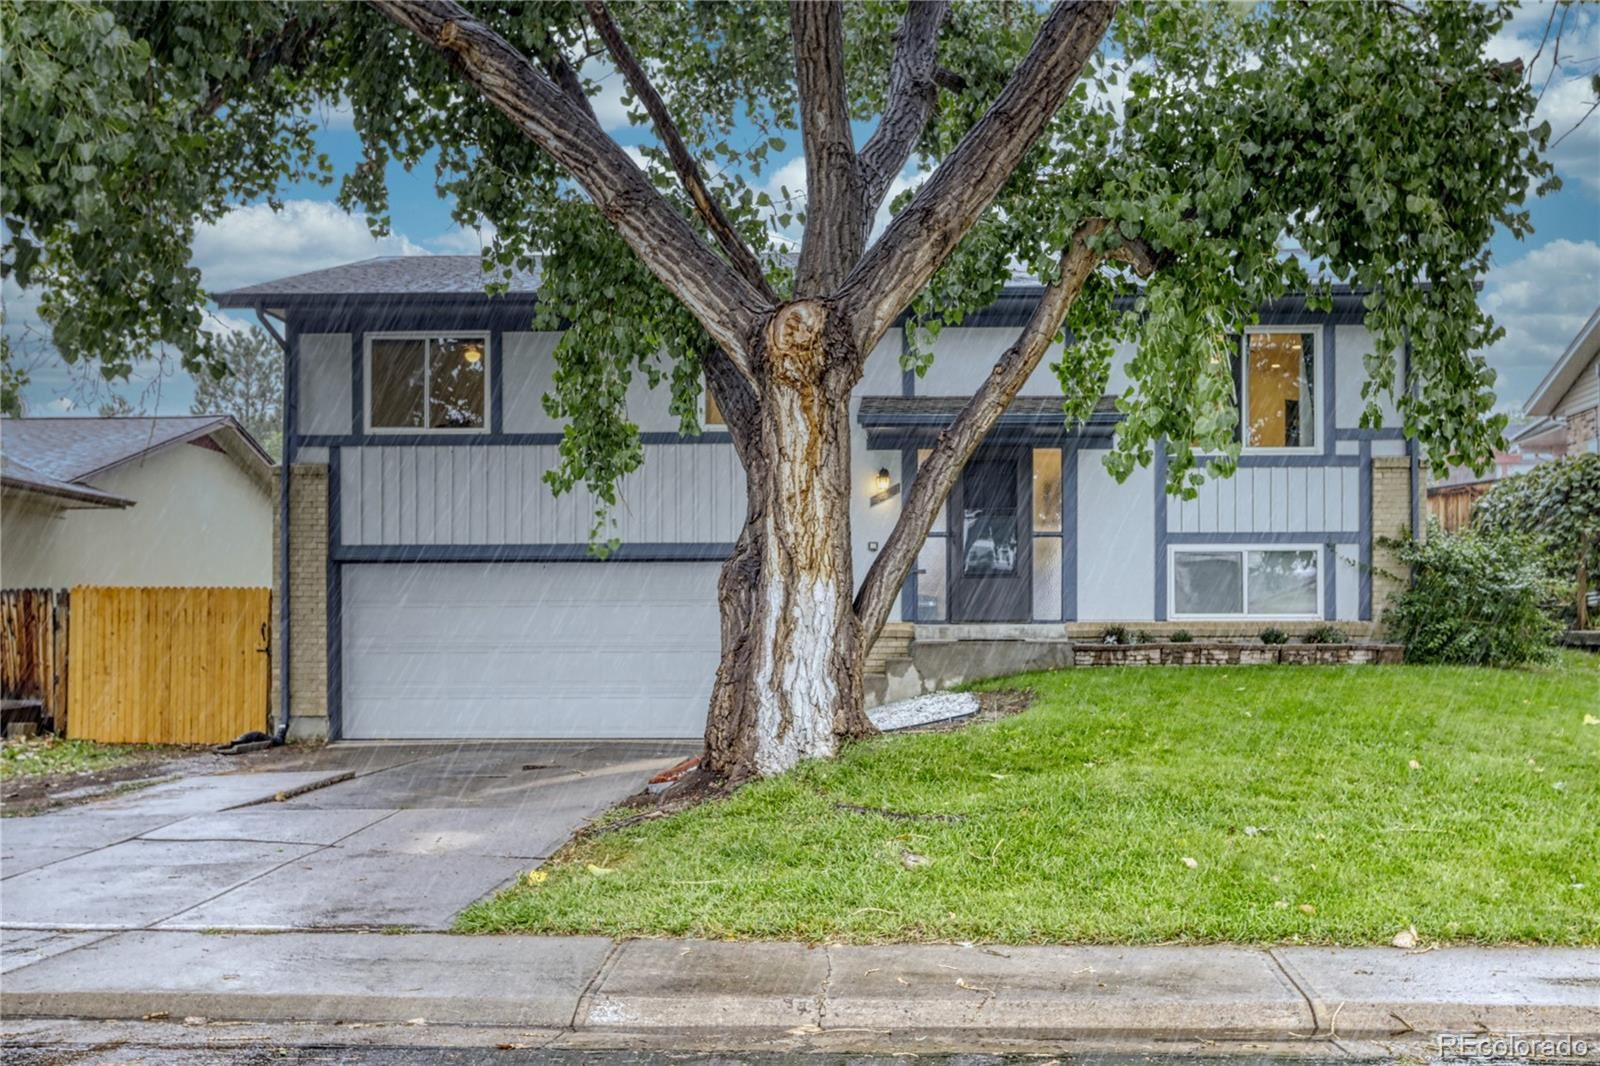 2283 S Coors Court, Lakewood, CO 80228 - MLS#: 5659705